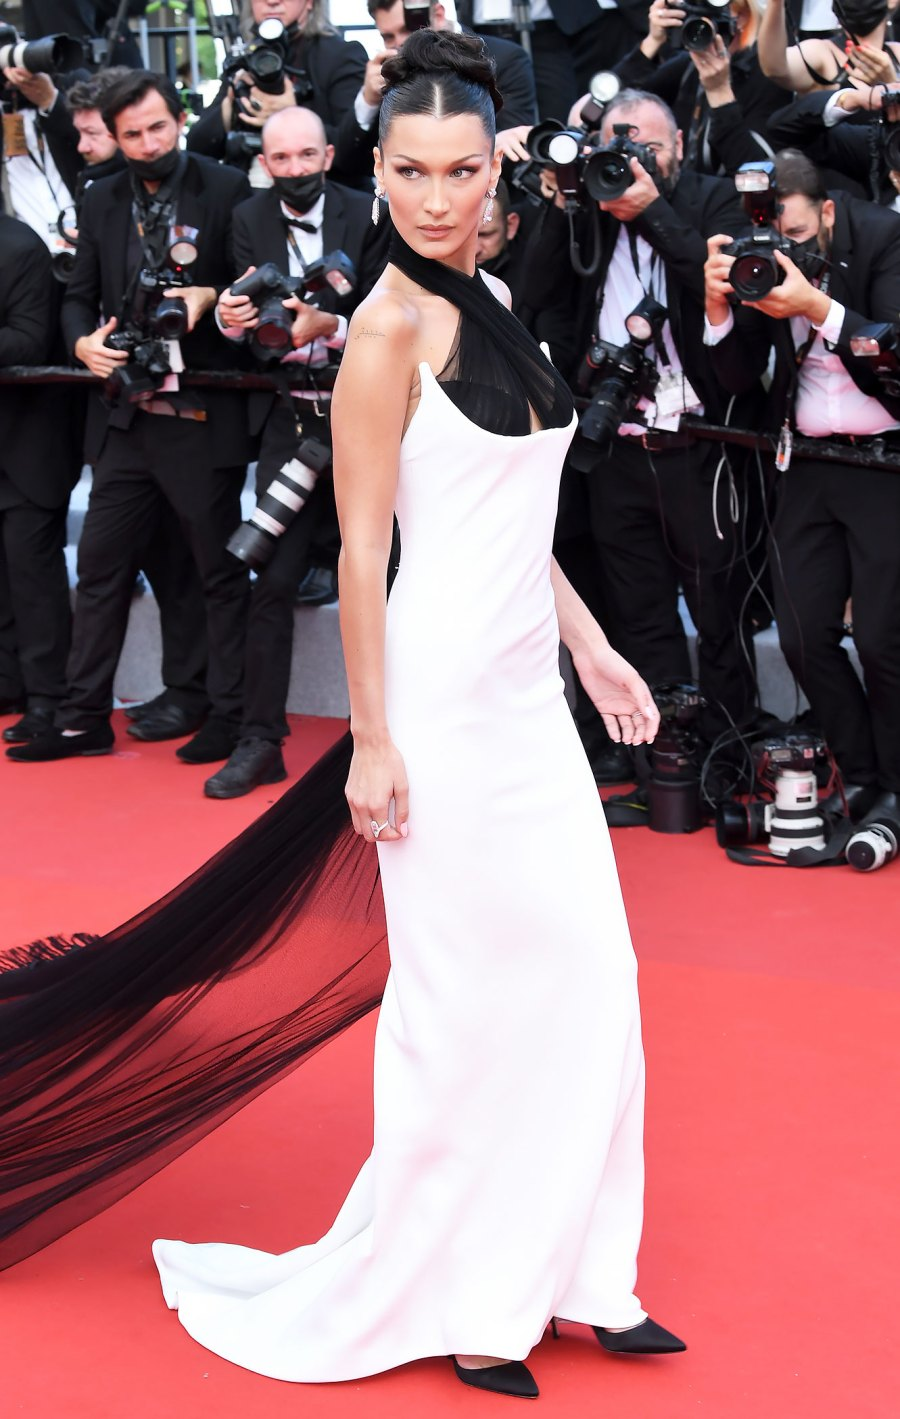 See What the Stars Wore to the 2021 Cannes Film Festival